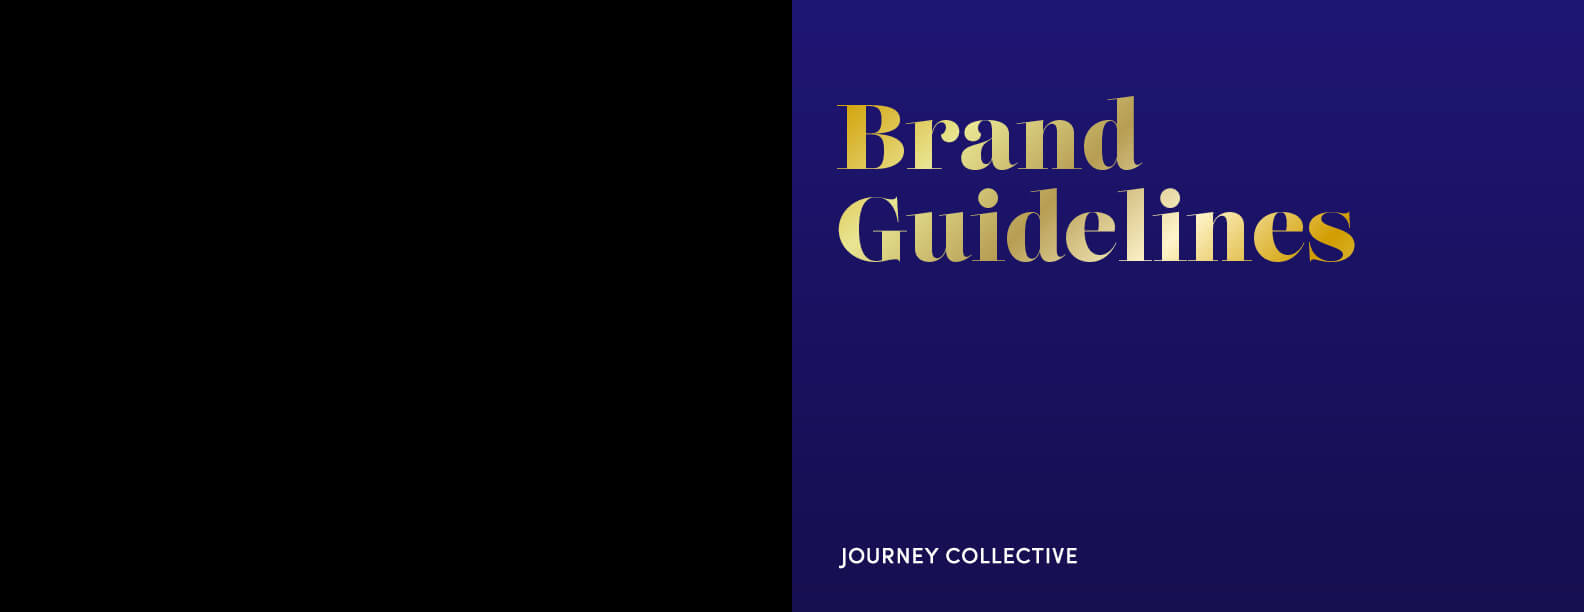 Journey-Collective-Brand-Guidelines.jpg